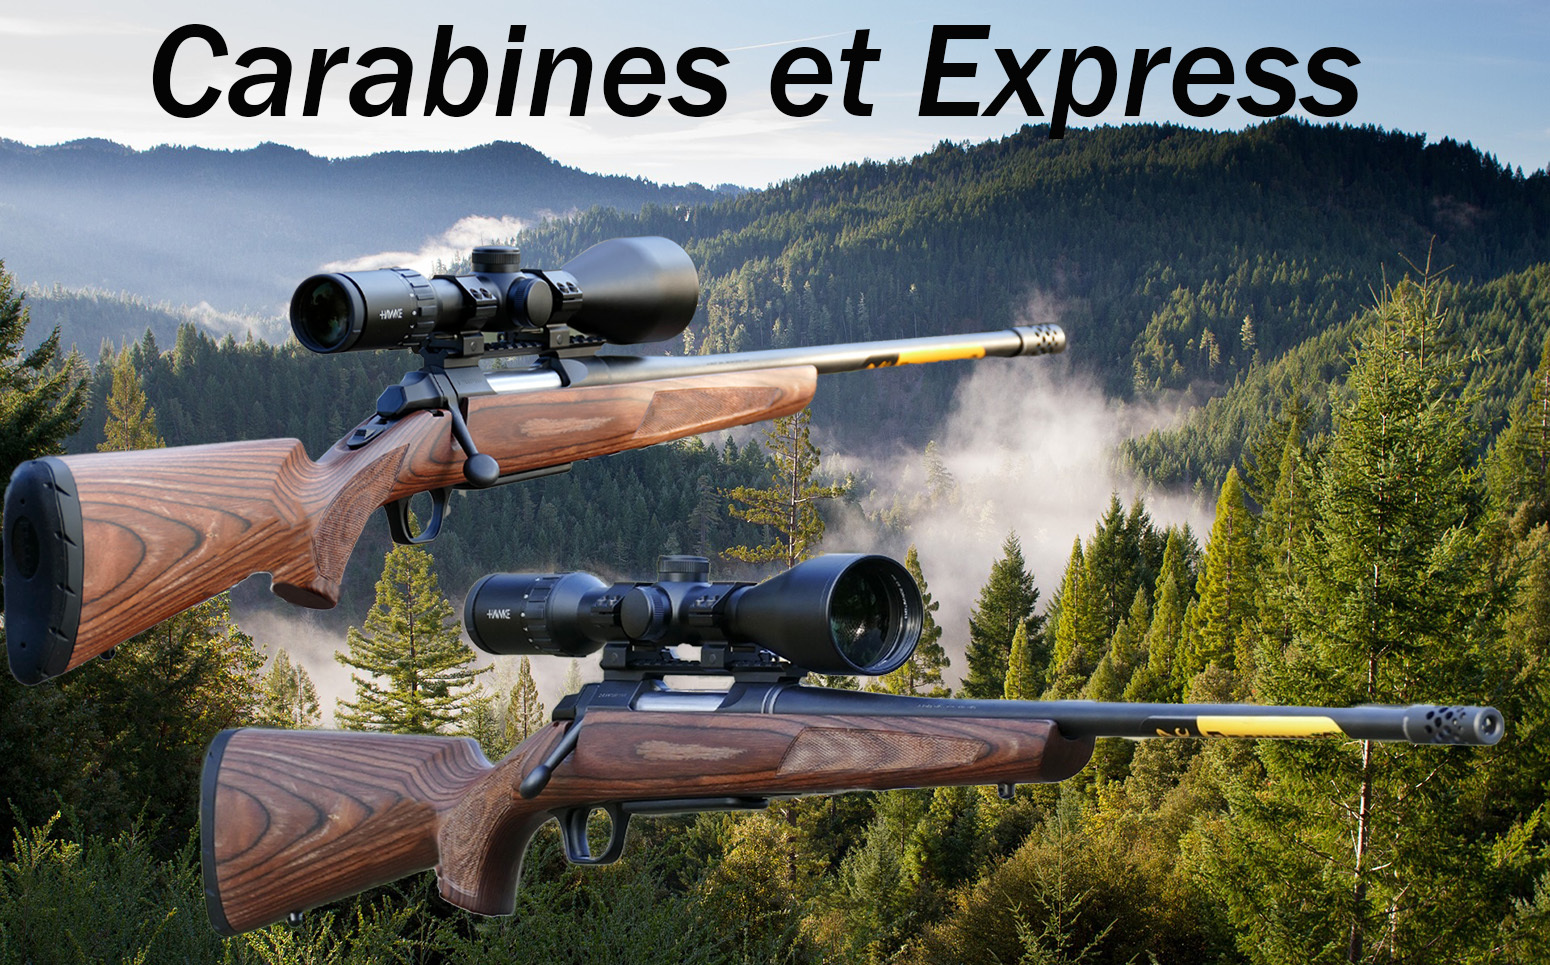 carabines-et-express-boulouchasse